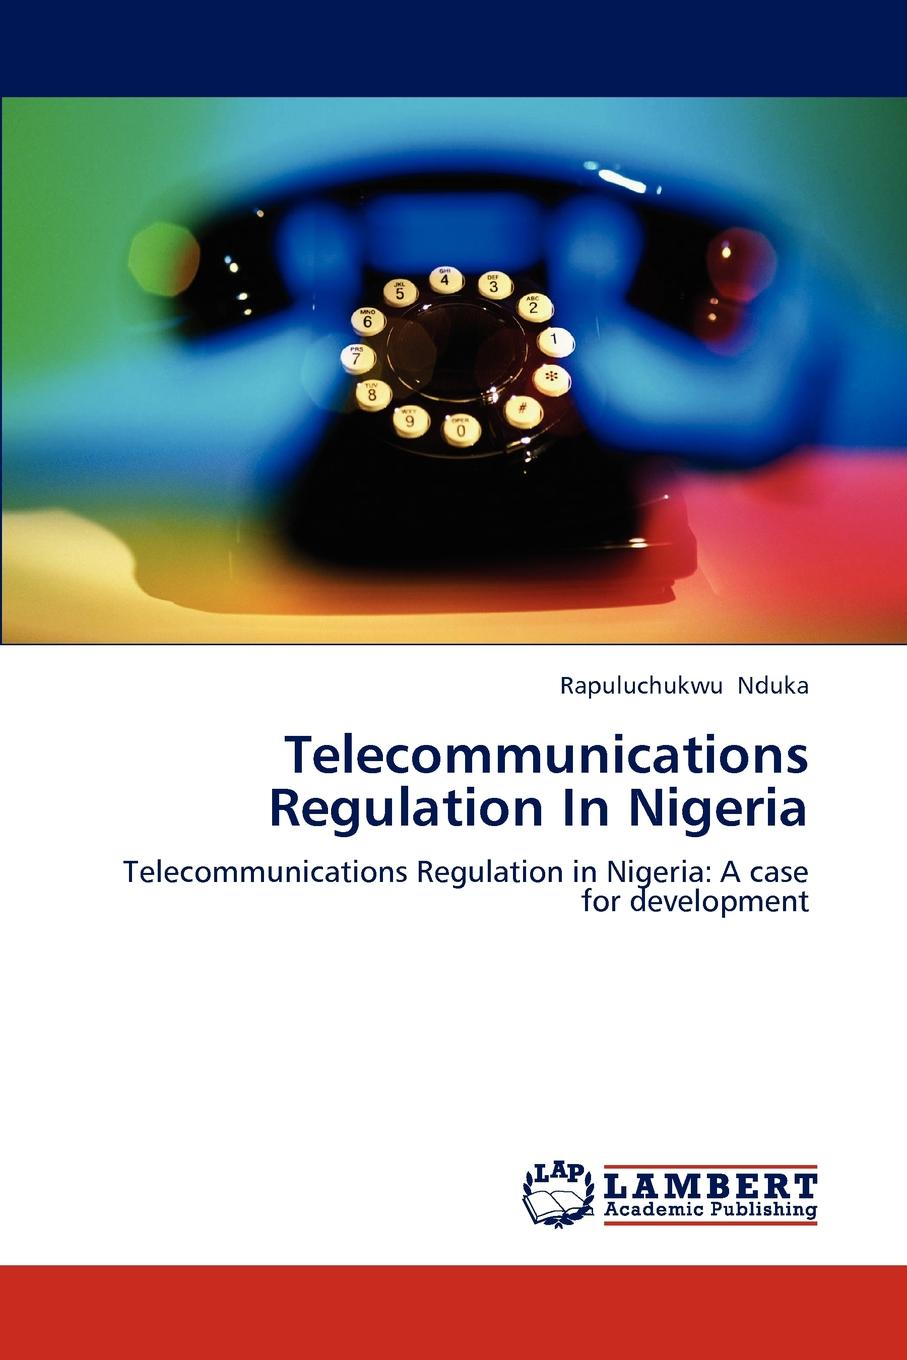 Rapuluchukwu Nduka Telecommunications Regulation in Nigeria charles edmond akers the rubber industry in brazil and the orient